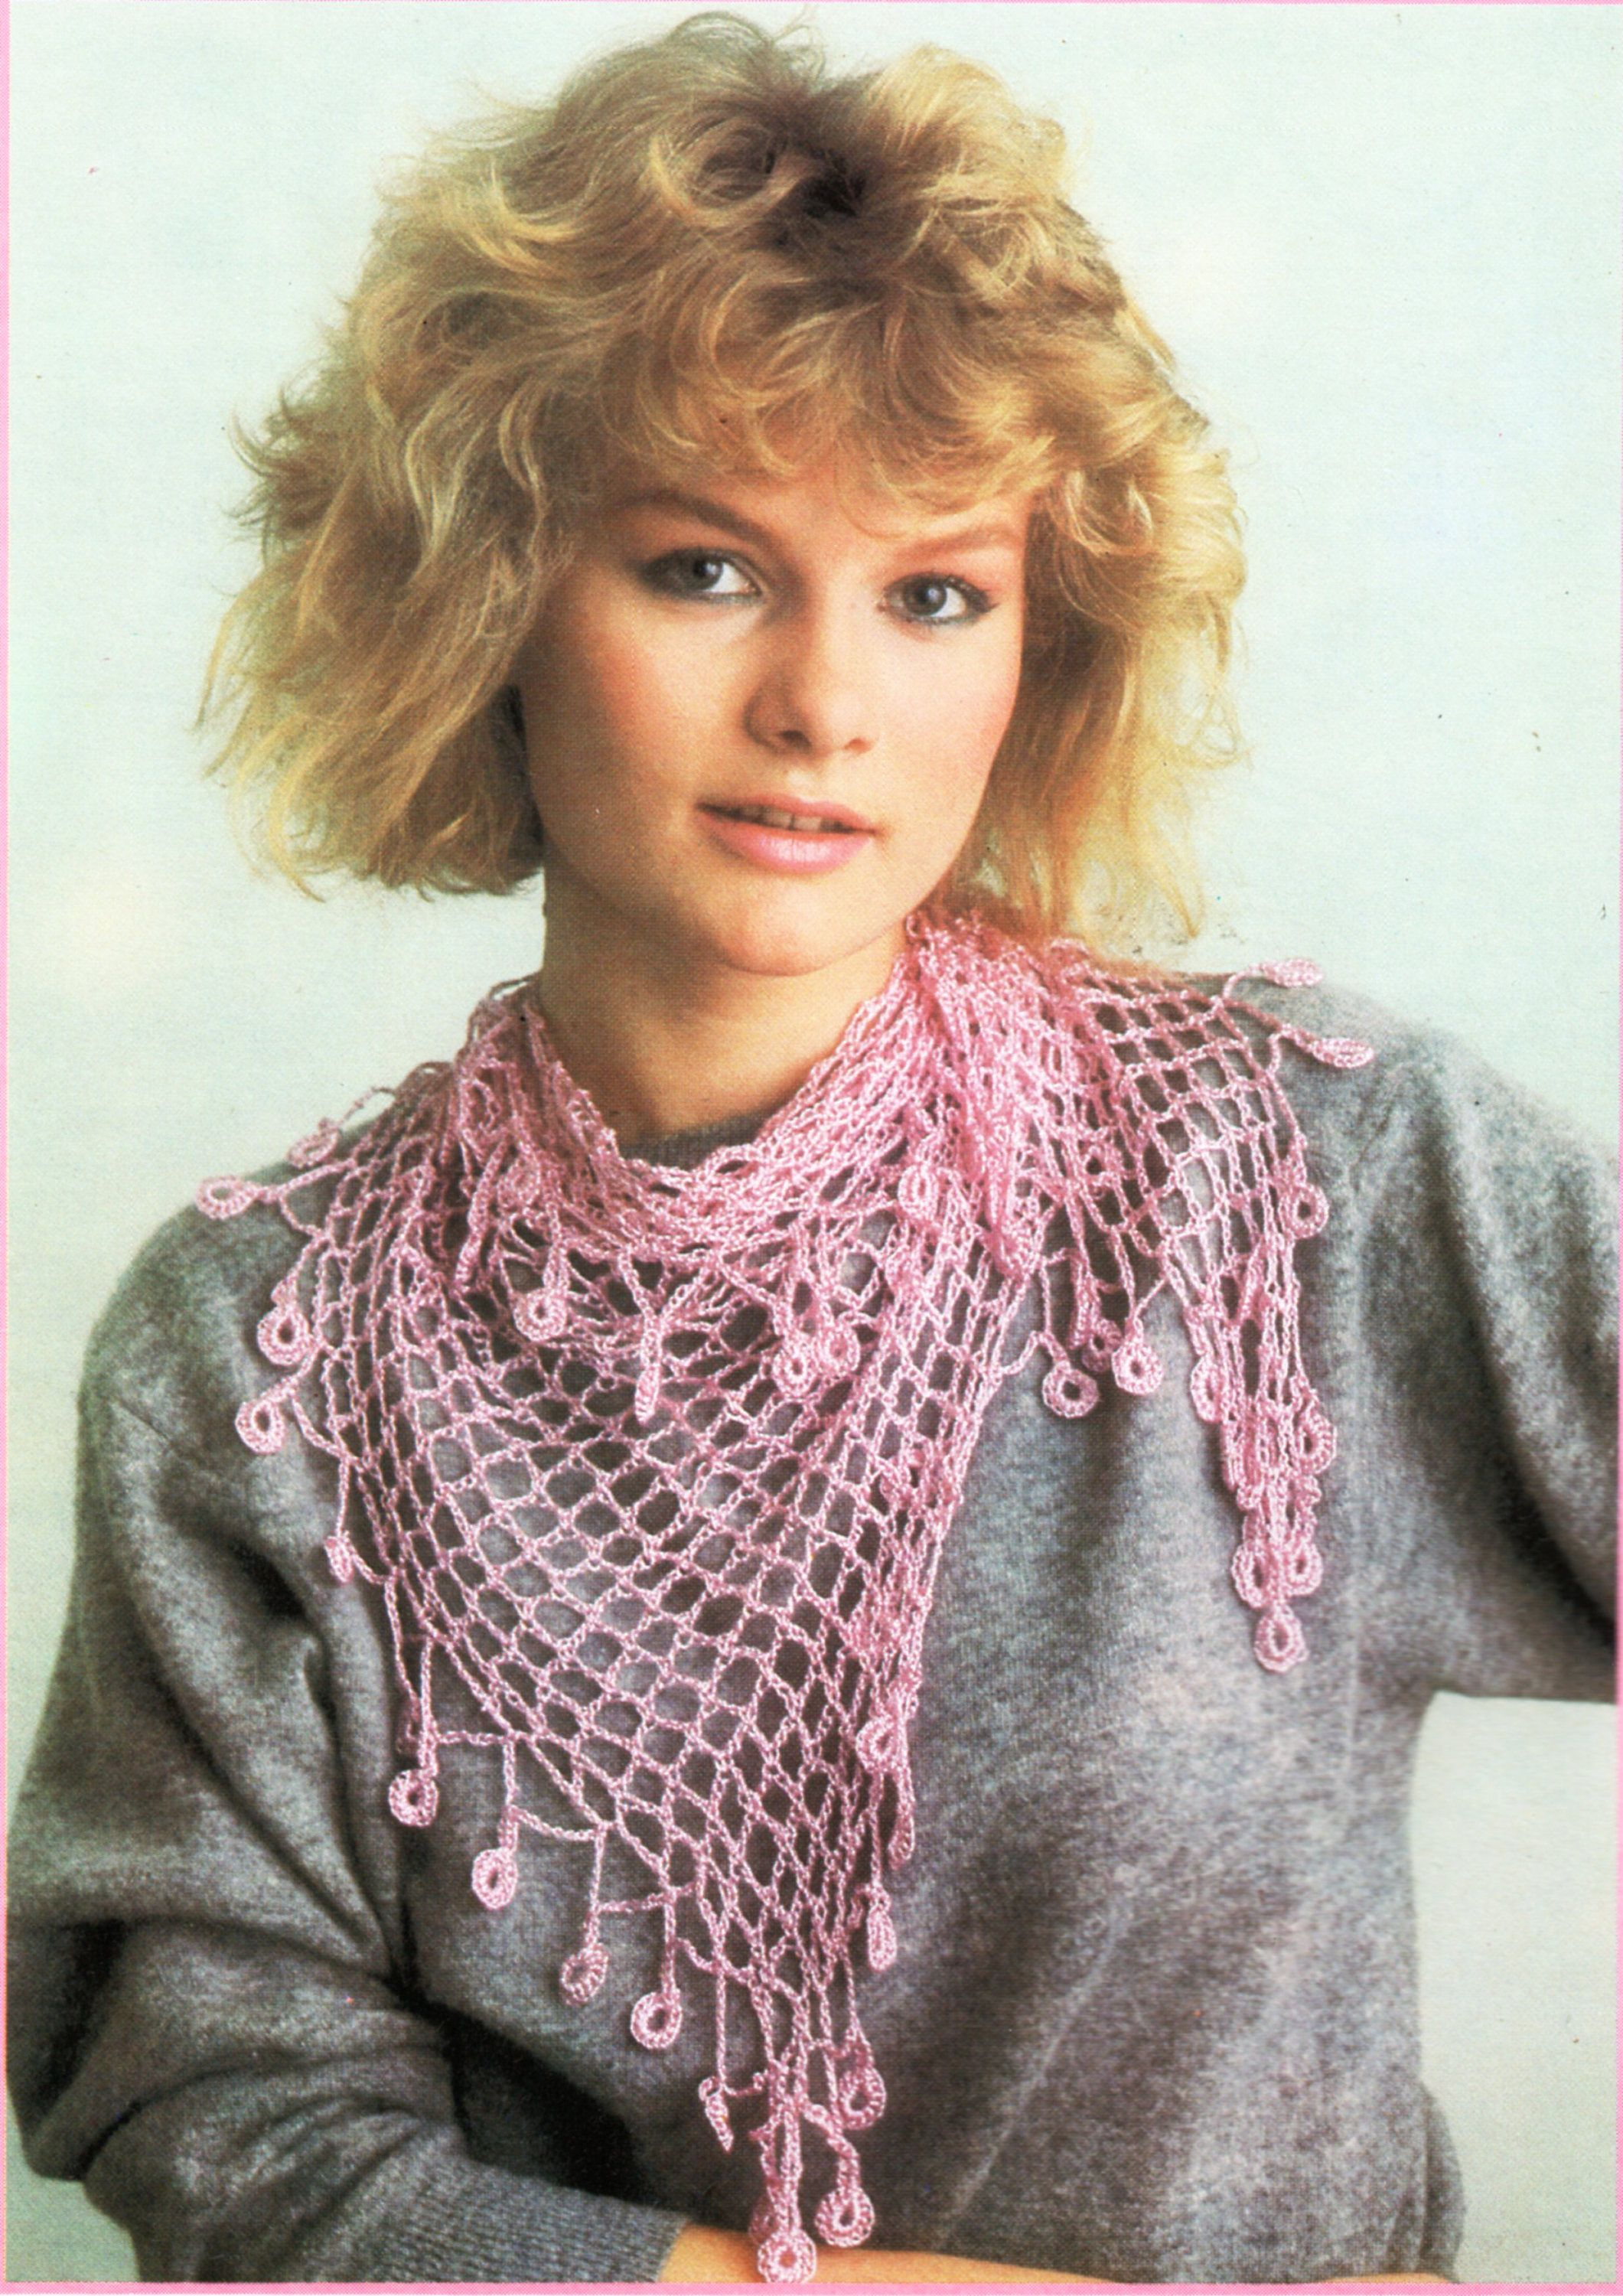 Crochet lace triangle scarf crochet pattern pdf womens lacy crochet lace triangle scarf crochet pattern pdf womens lacy crochet net triangular scarf lace crochet yarn 2ply pdf instant download bankloansurffo Image collections